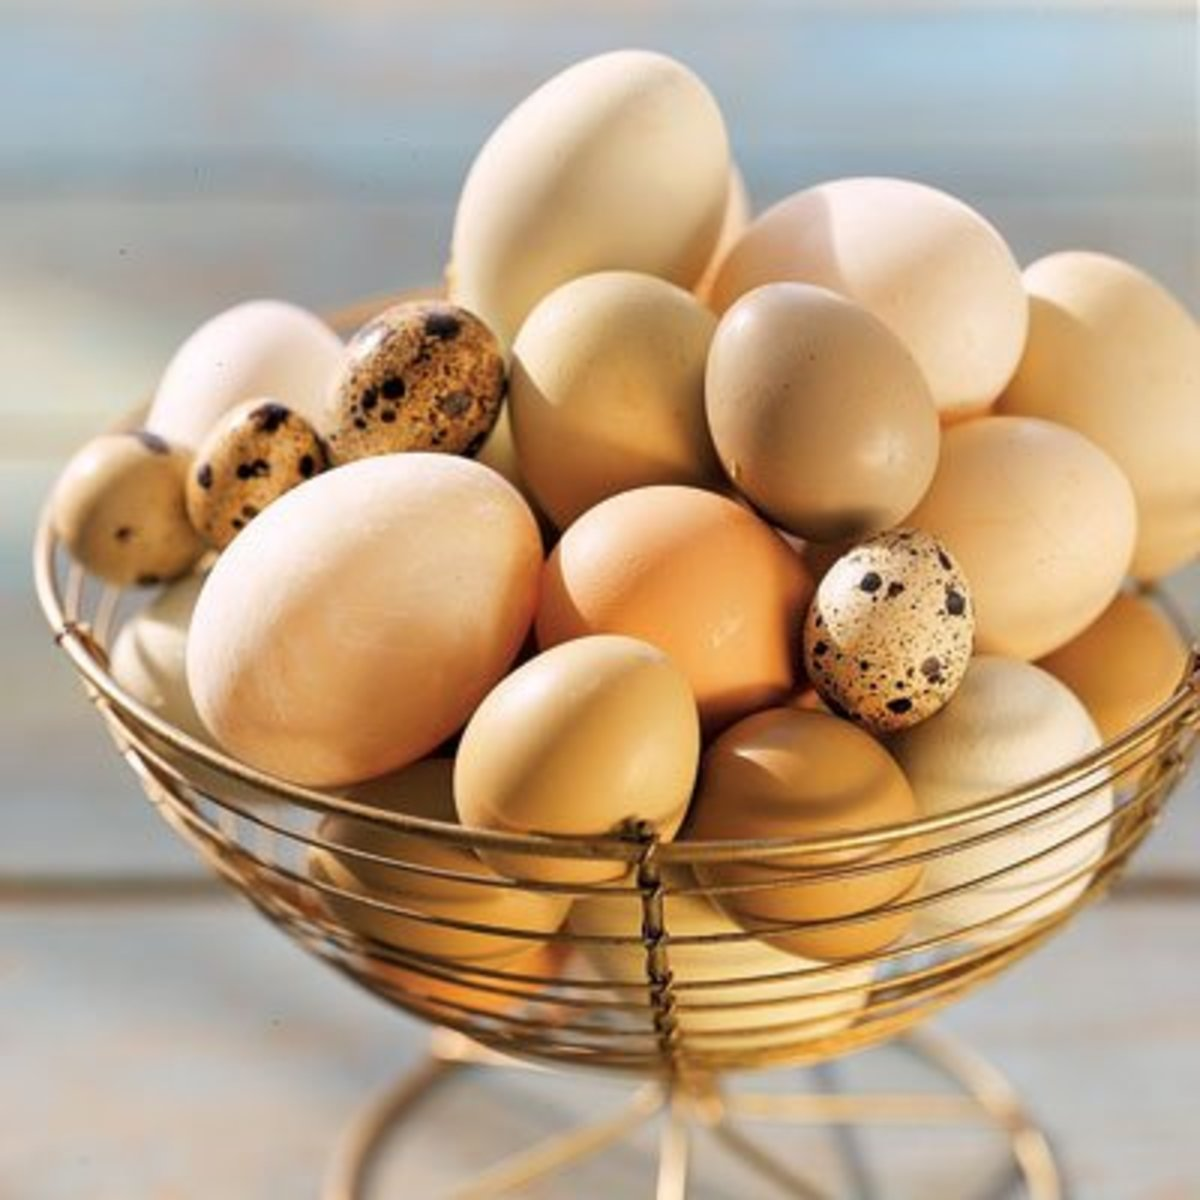 Different ways to use eggs in cookery